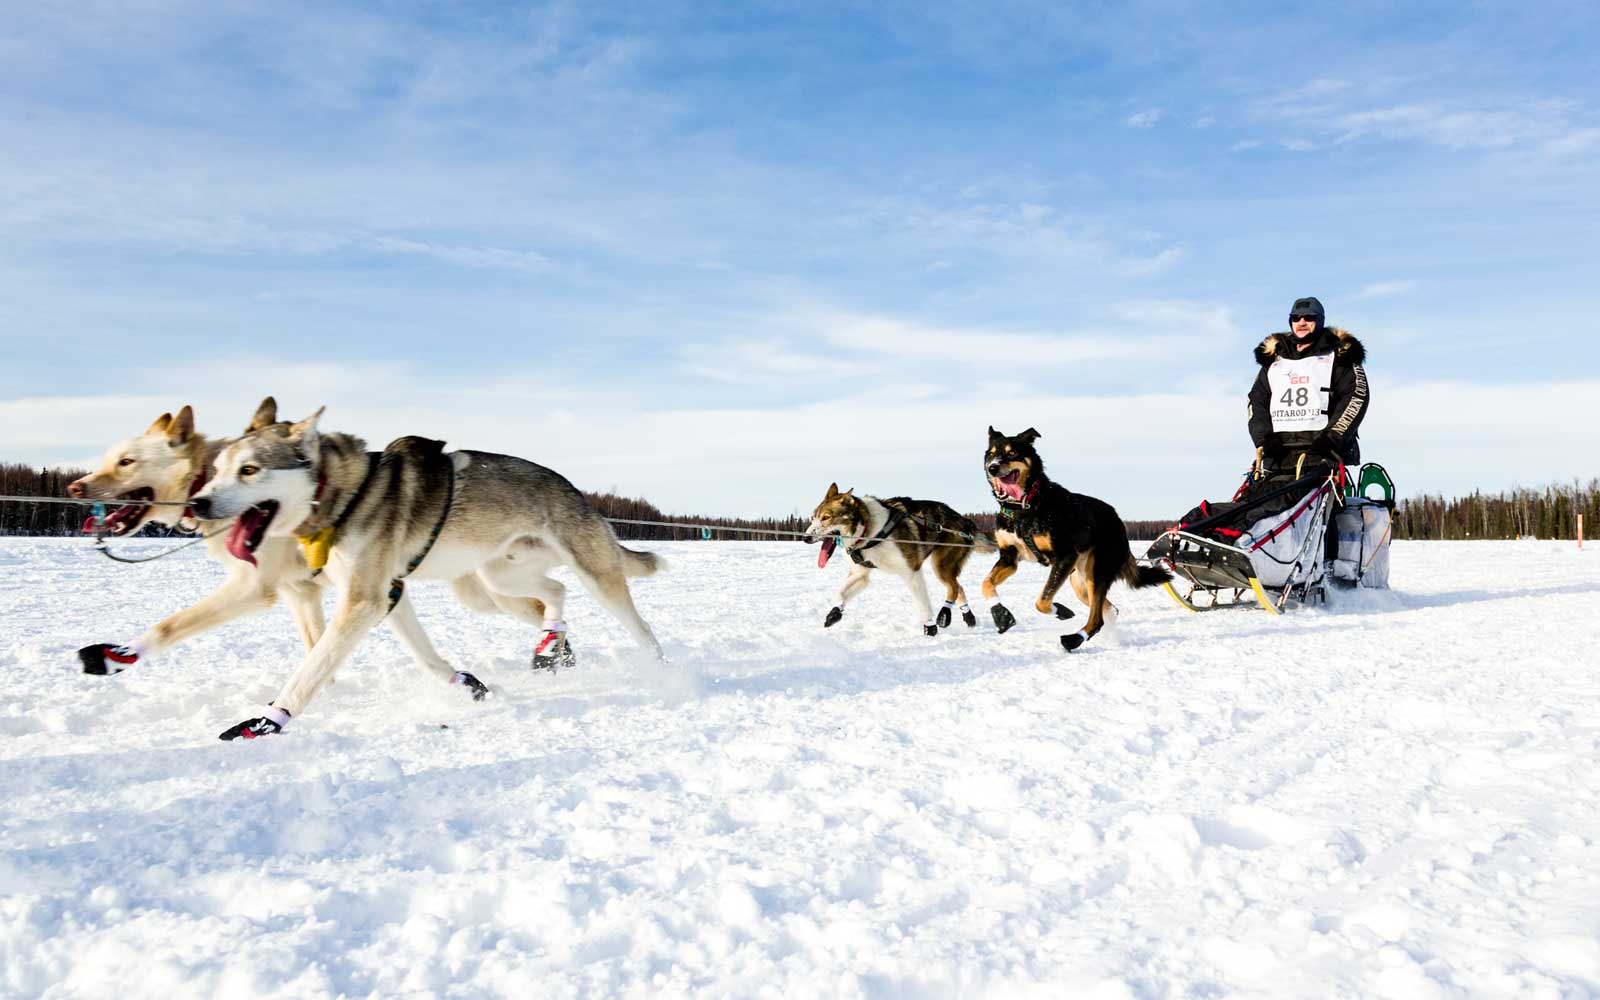 How to See the Iditarod in Alaska